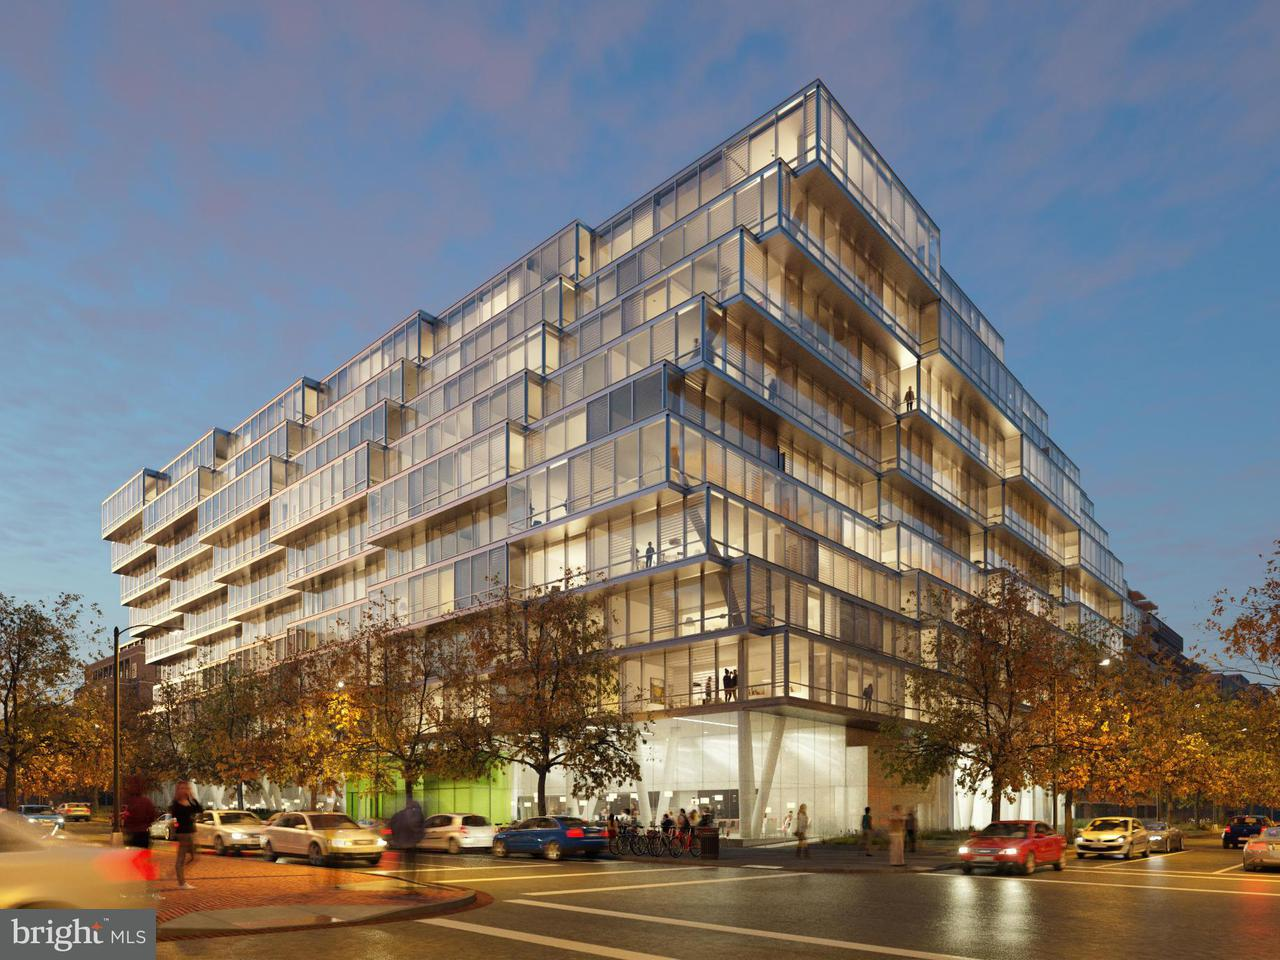 Condominium for Sale at 1111 24th St Nw #4q 1111 24th St Nw #4q Washington, District Of Columbia 20037 United States